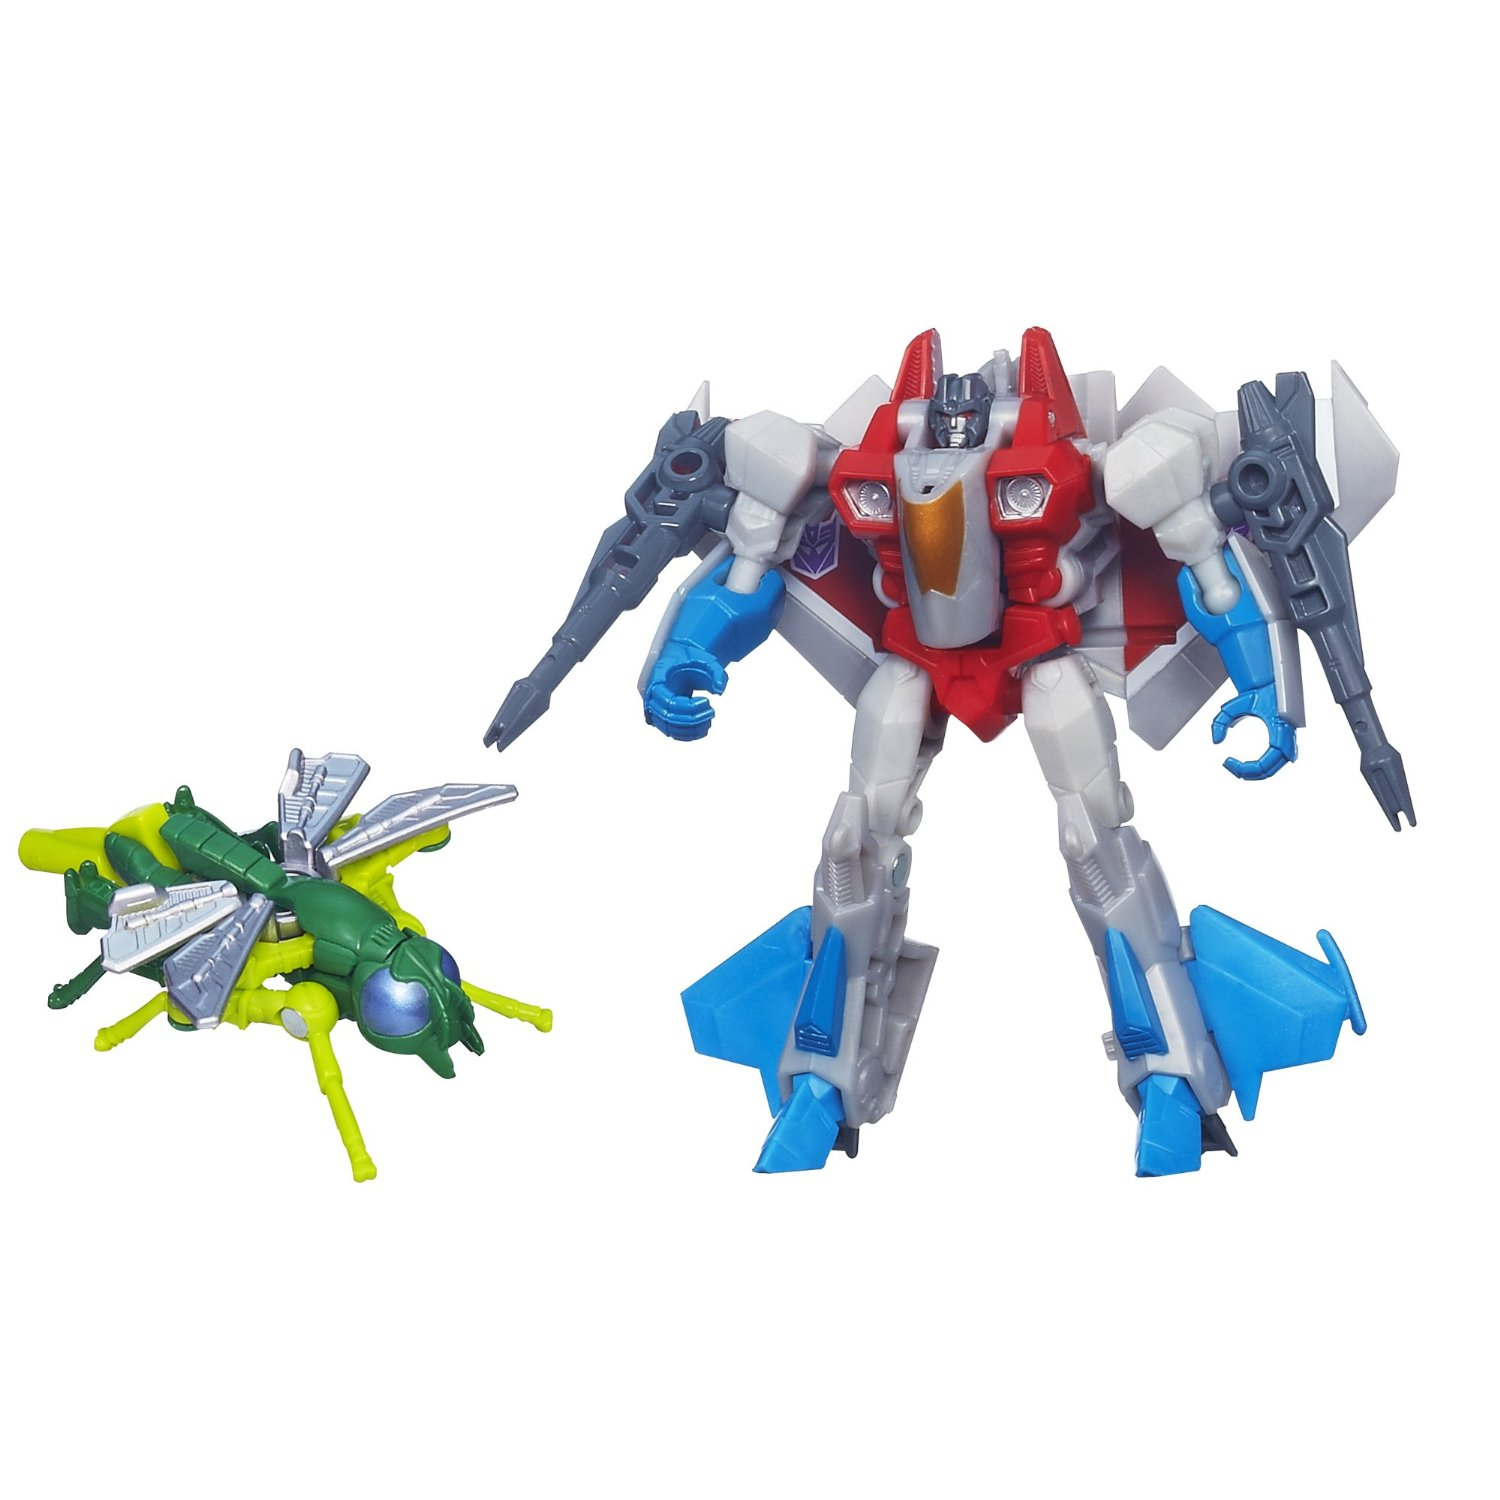 Transformer Toys - Generations Legends Starscream and ...